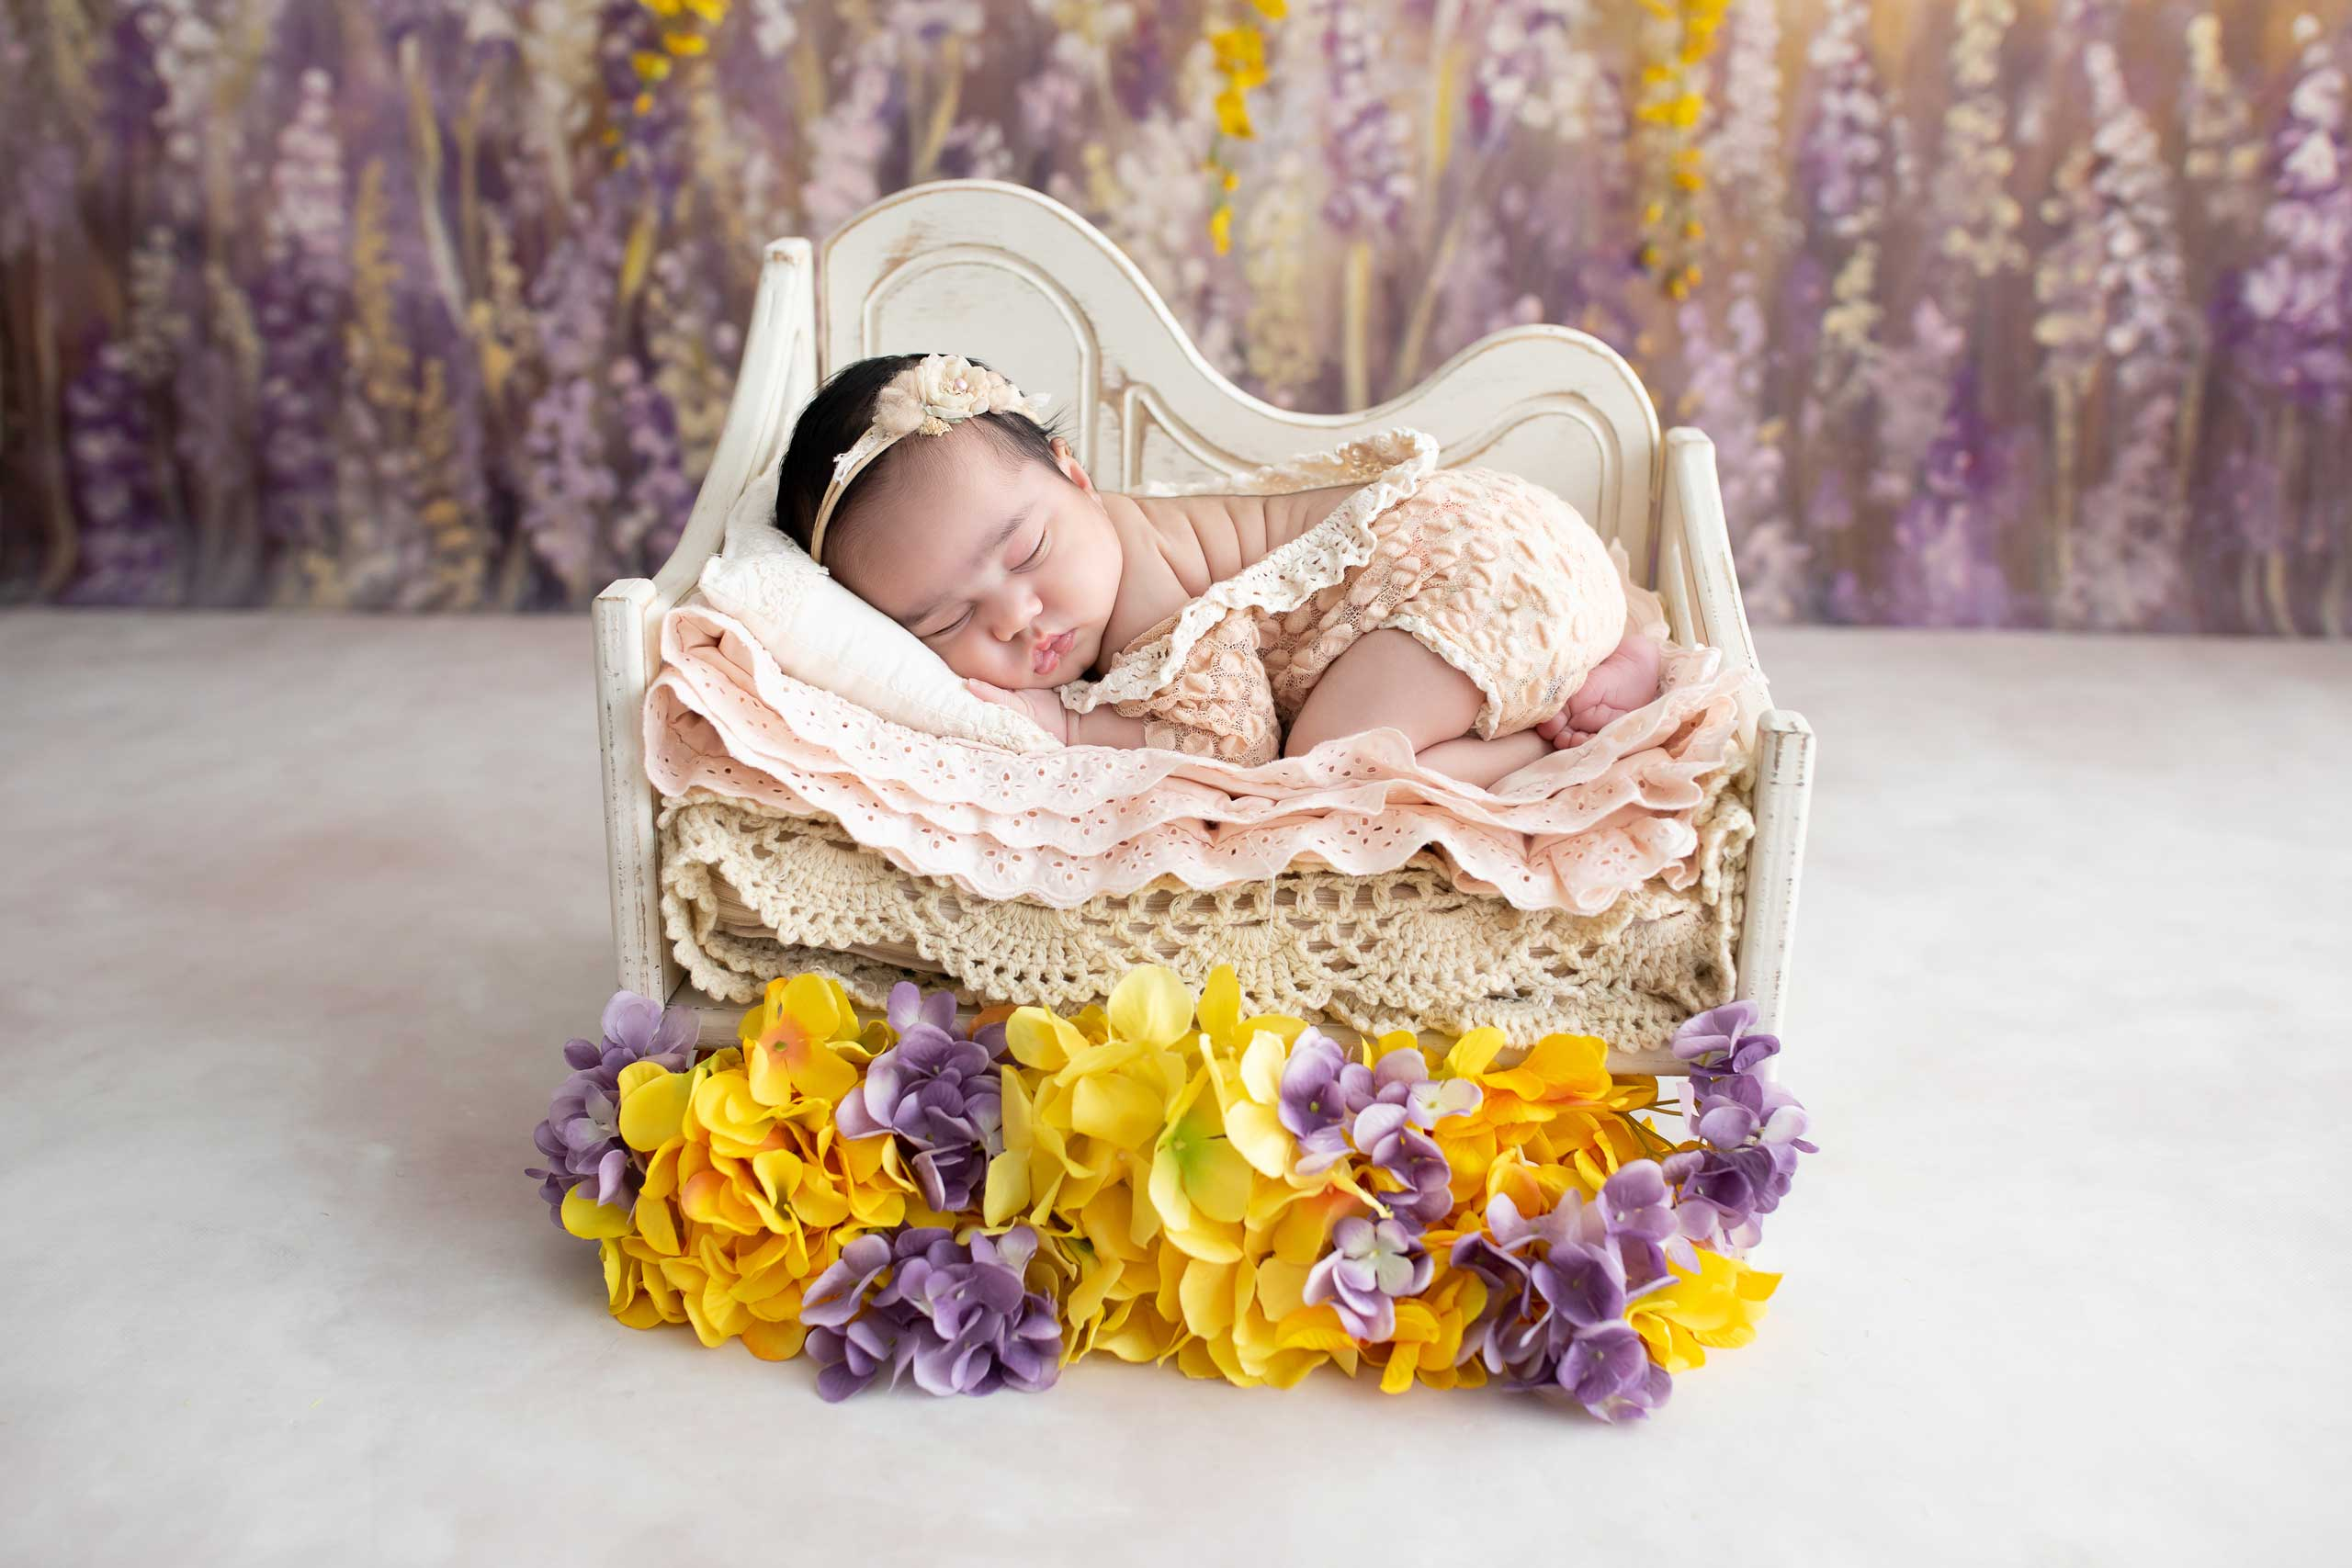 baby newborn photograph with flowers taken in Los Angeles by Ramina Magid Photography